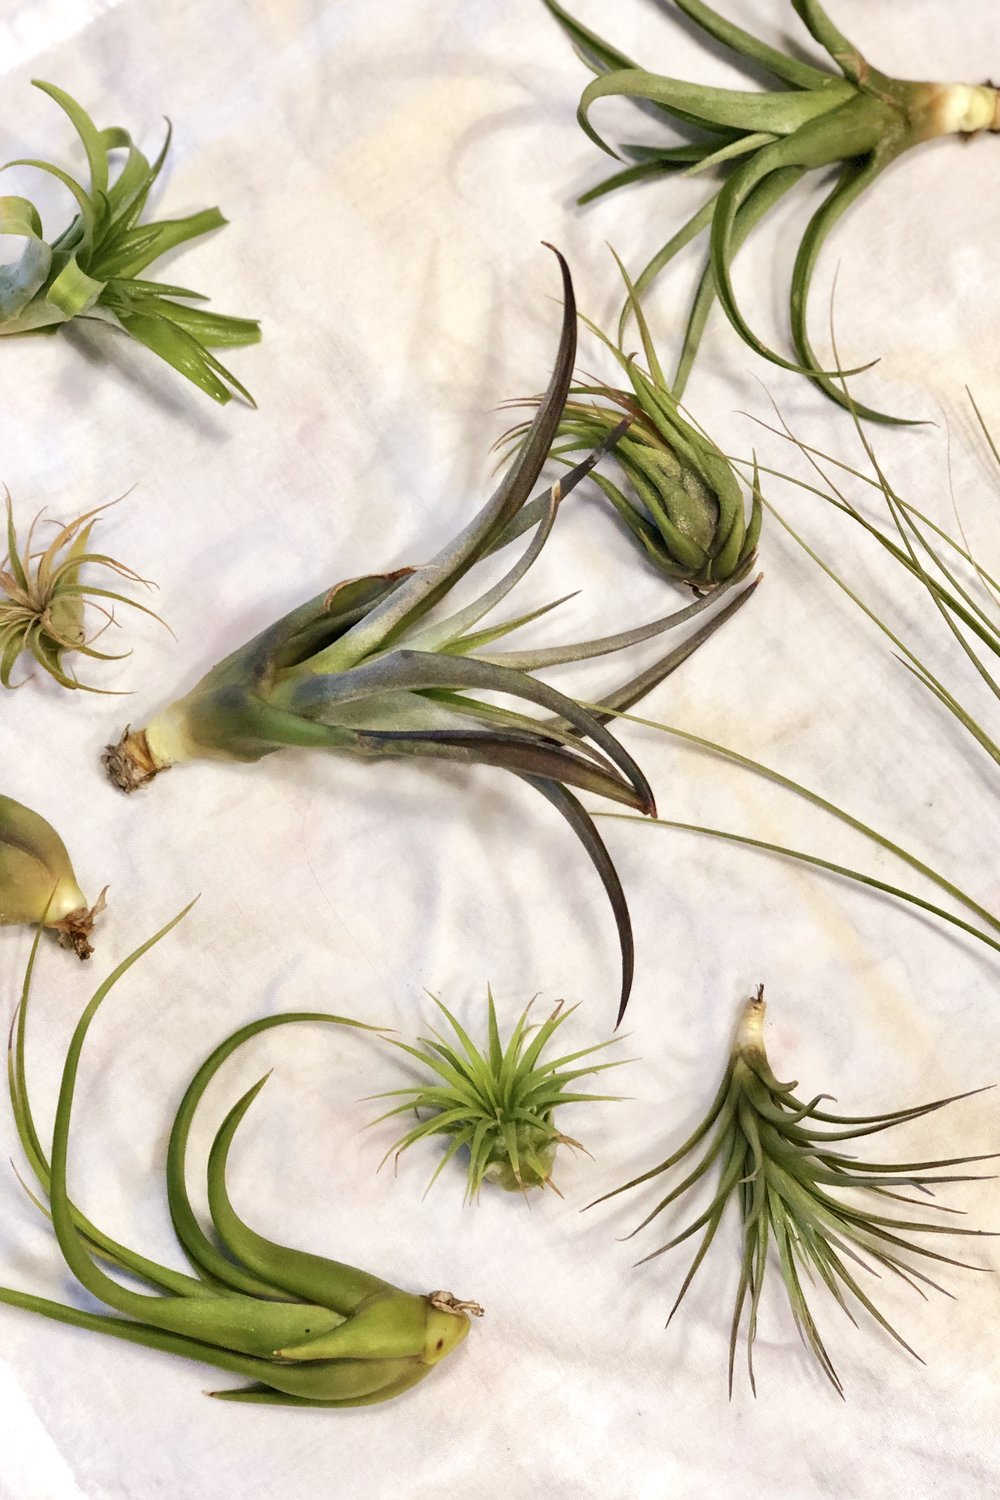 Drying air plants.